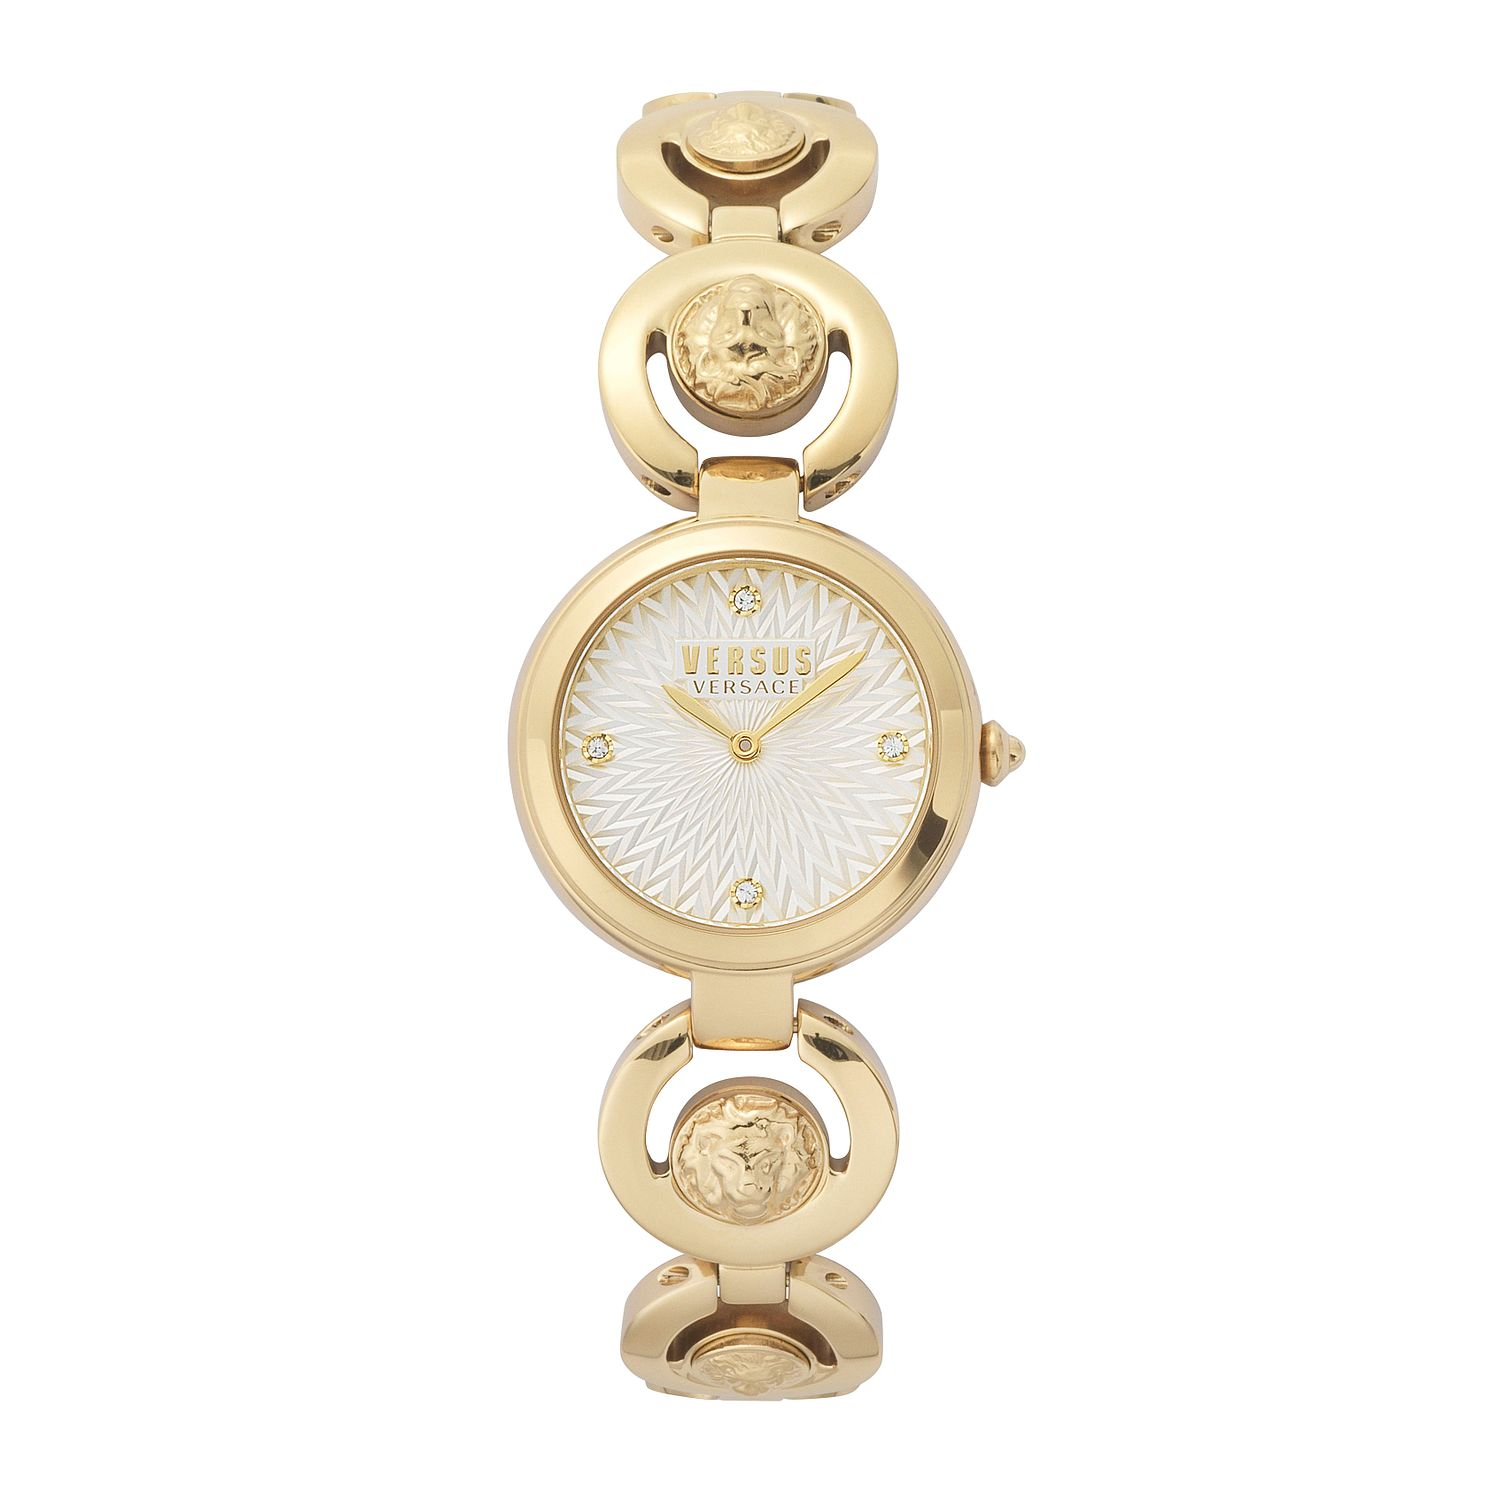 Versus Versace Peking Road Petite Ladies' Bracelet Watch - Product number 5363683